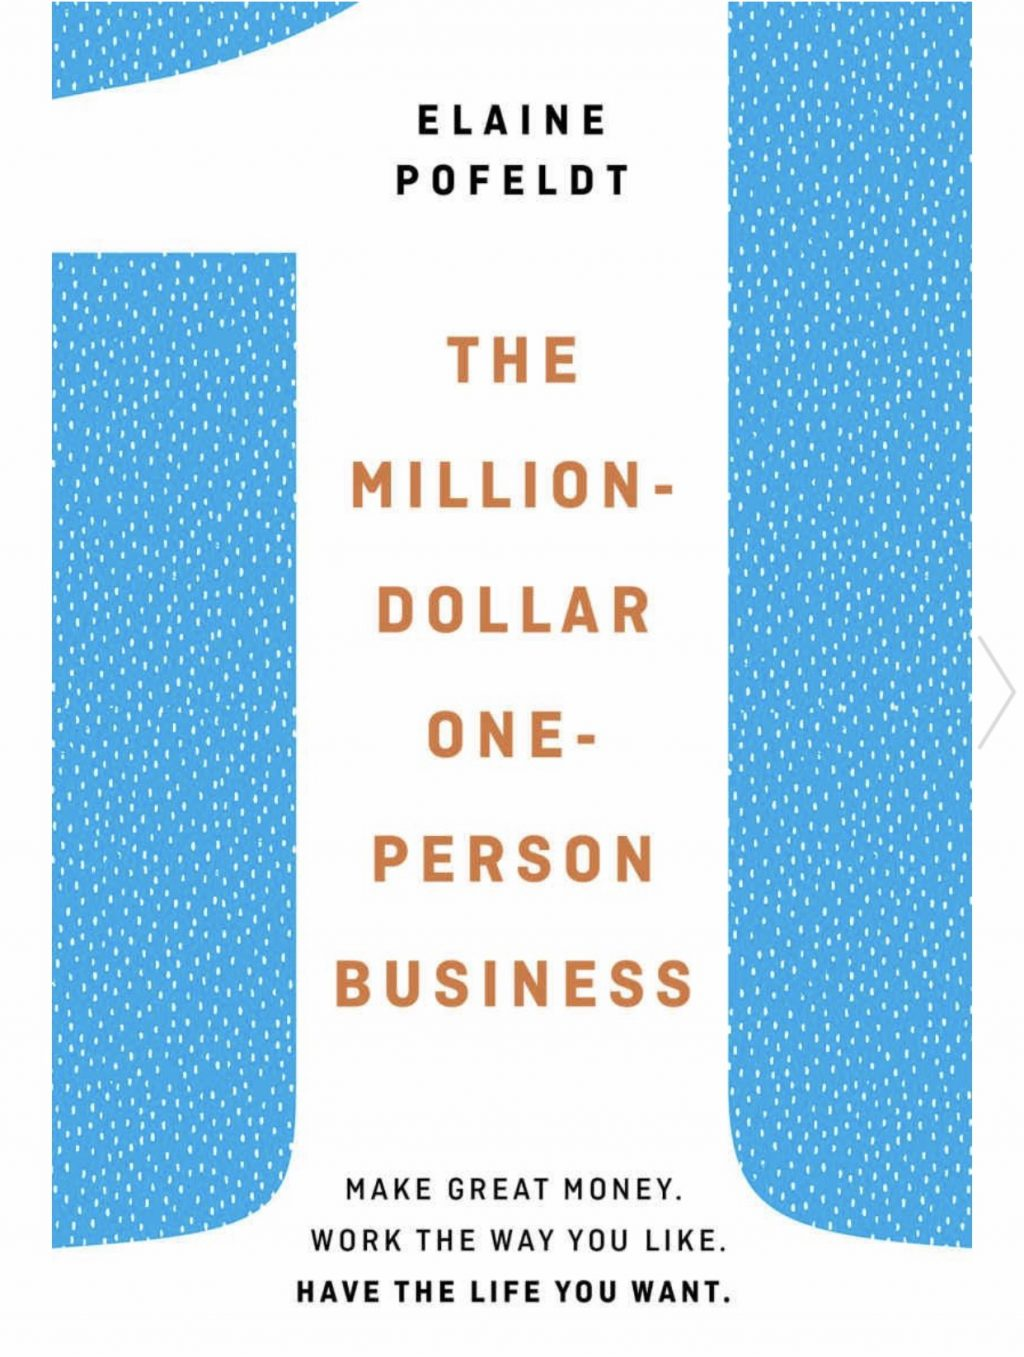 The Million-Dollar One-Person Business by Elaine Pofeldt